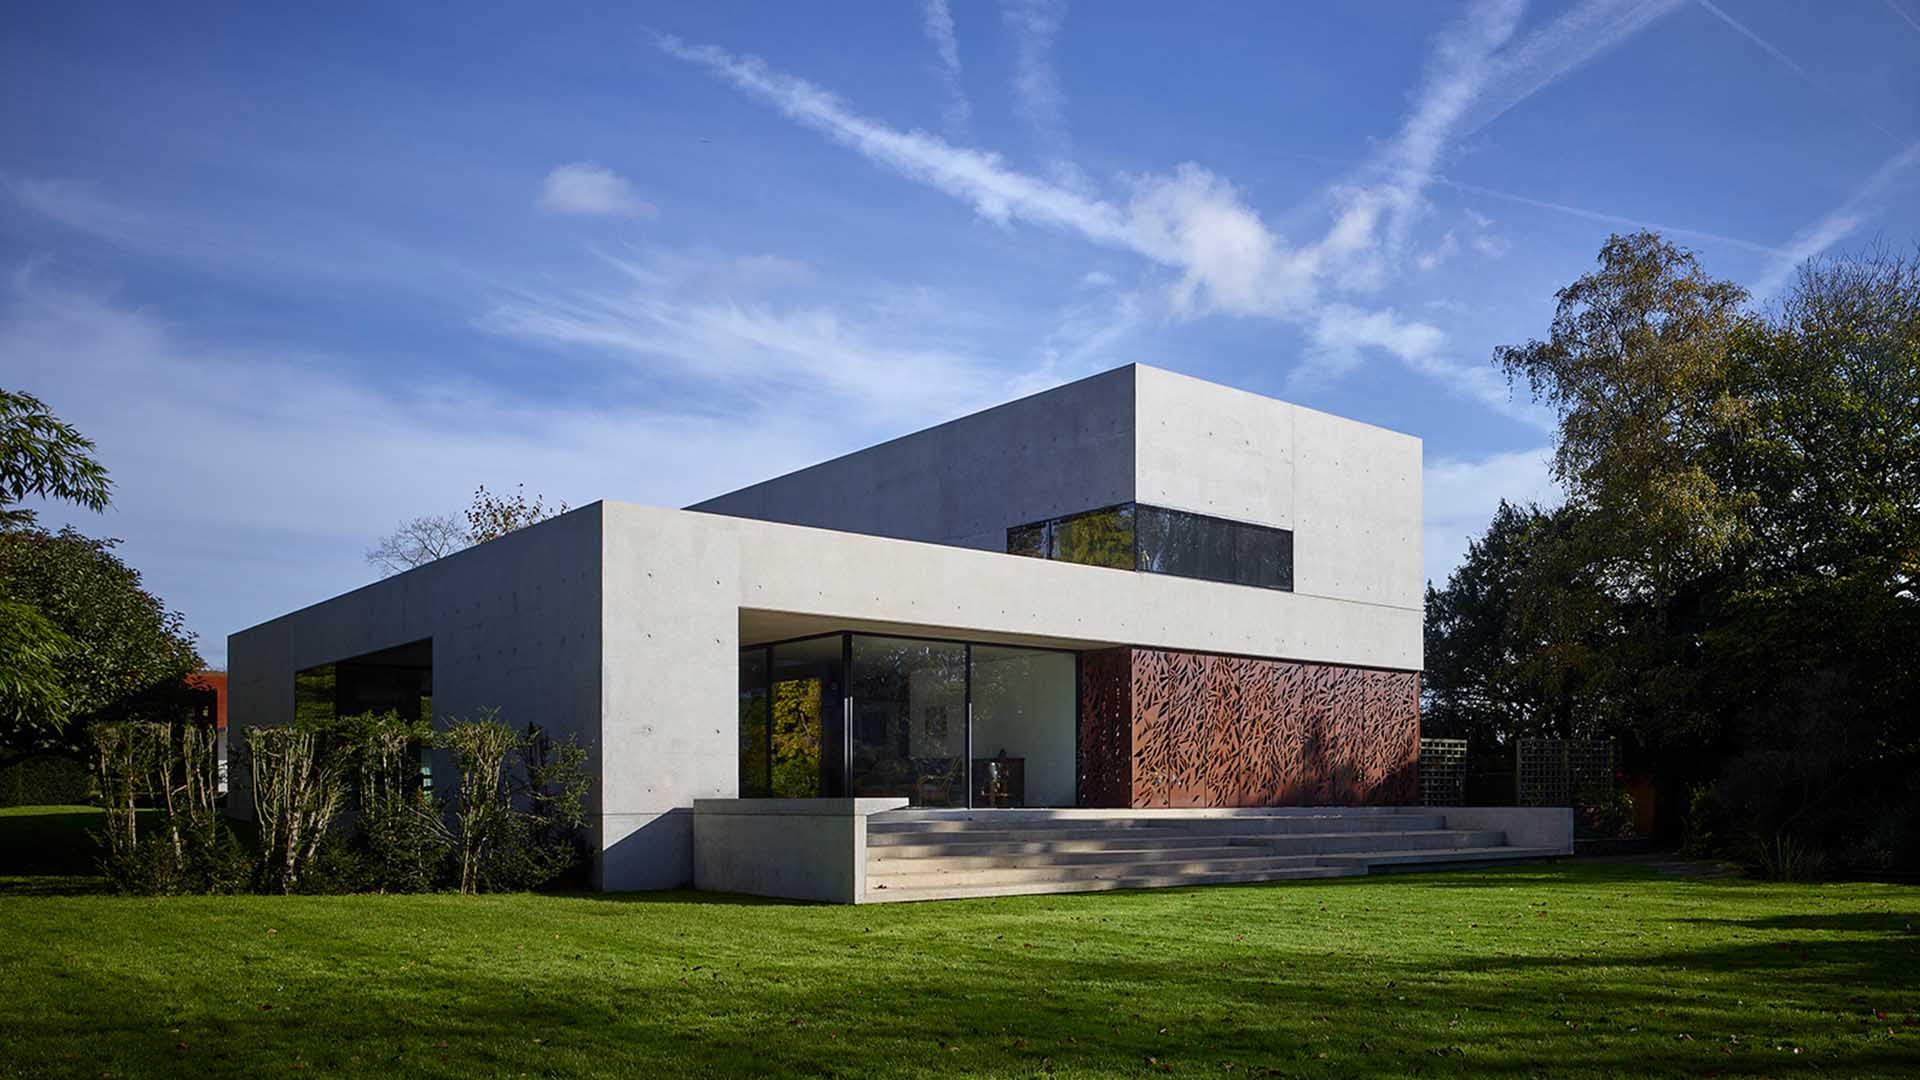 Winner of the RIBA South Awards 2018